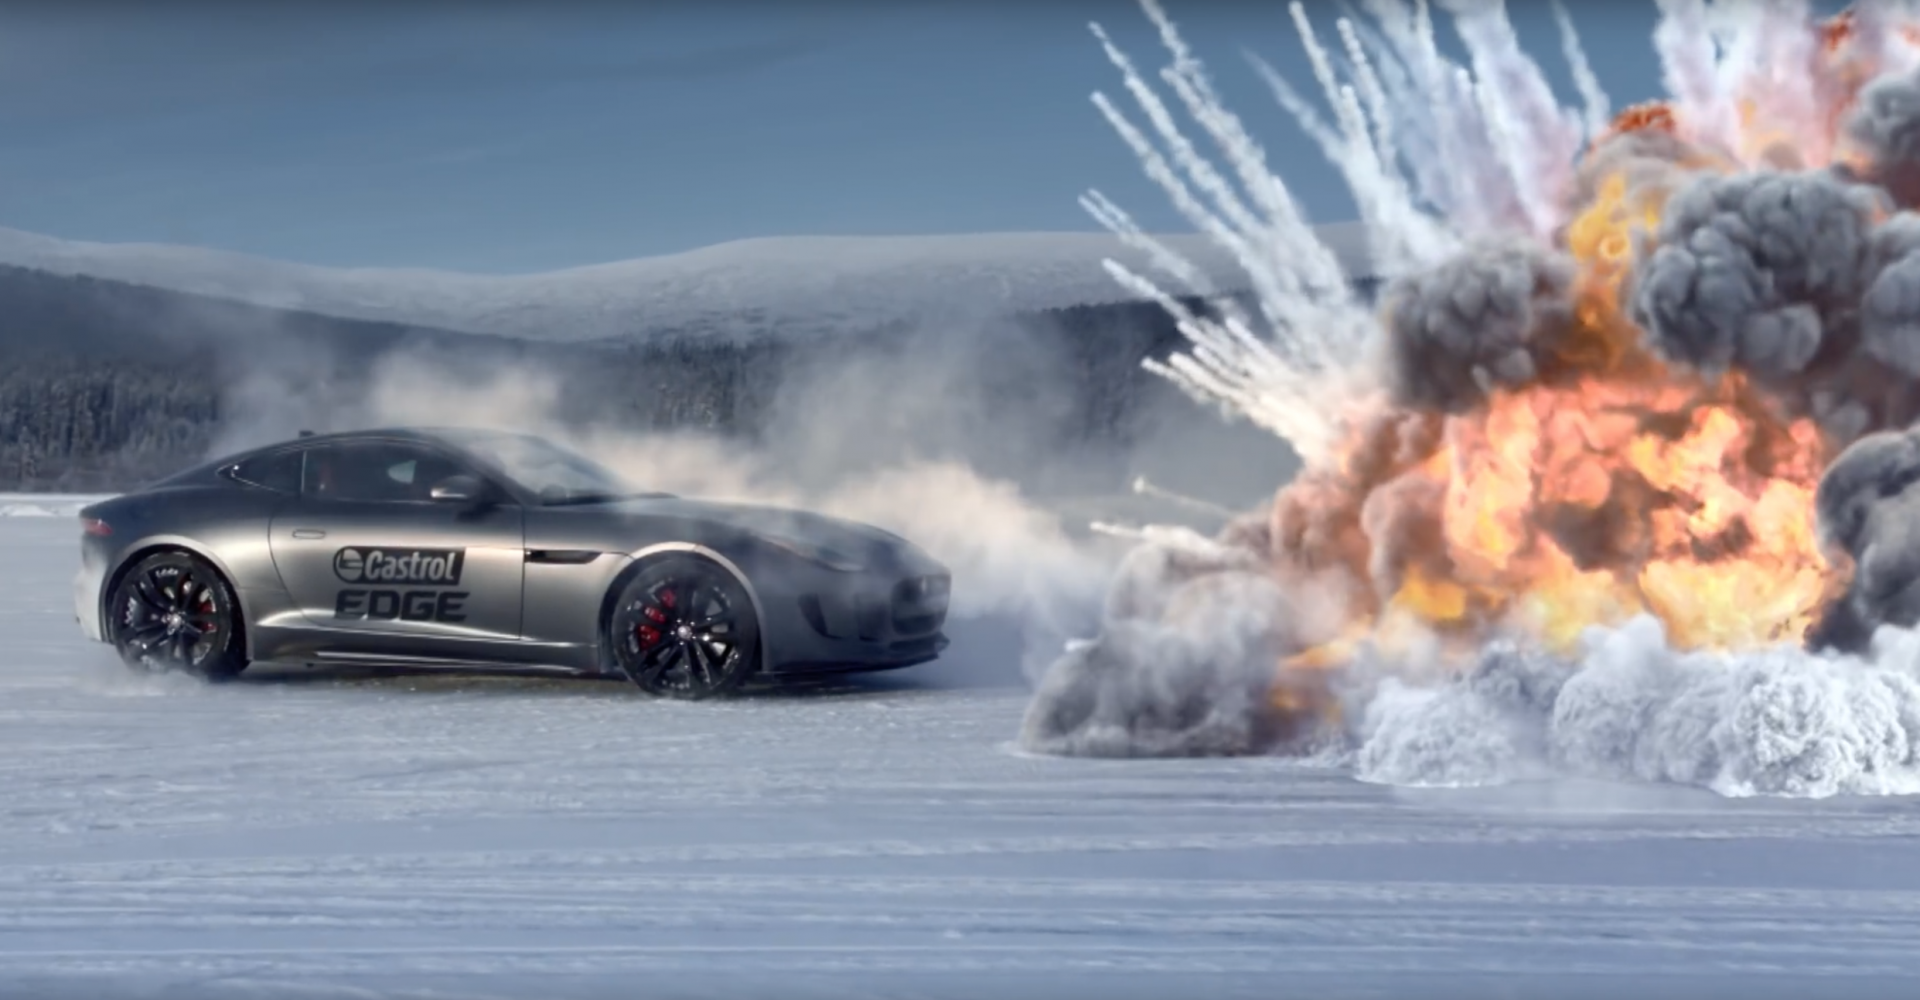 Stunt Driver Takes On Helicopters, Tanks And A Nuclear Sub On Ice Lake